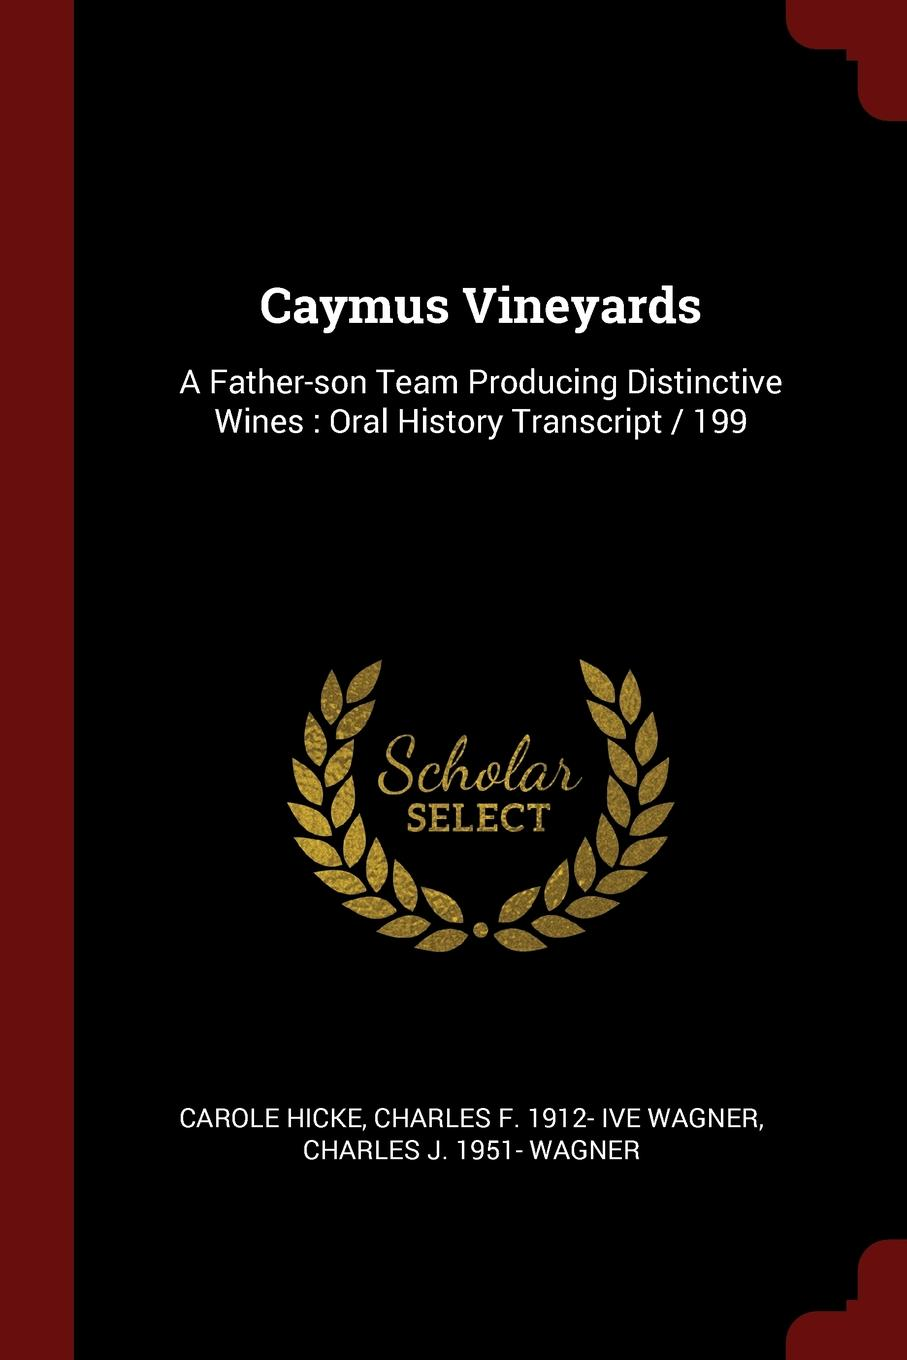 Carole Hicke, Charles F. 1912- ive Wagner, Charles J. 1951- Wagner Caymus Vineyards. A Father-son Team Producing Distinctive Wines : Oral History Transcript / 199 carole hicke charles a 1927 ive carpy viticulture and enology at freemark abbey oral history transcript 199